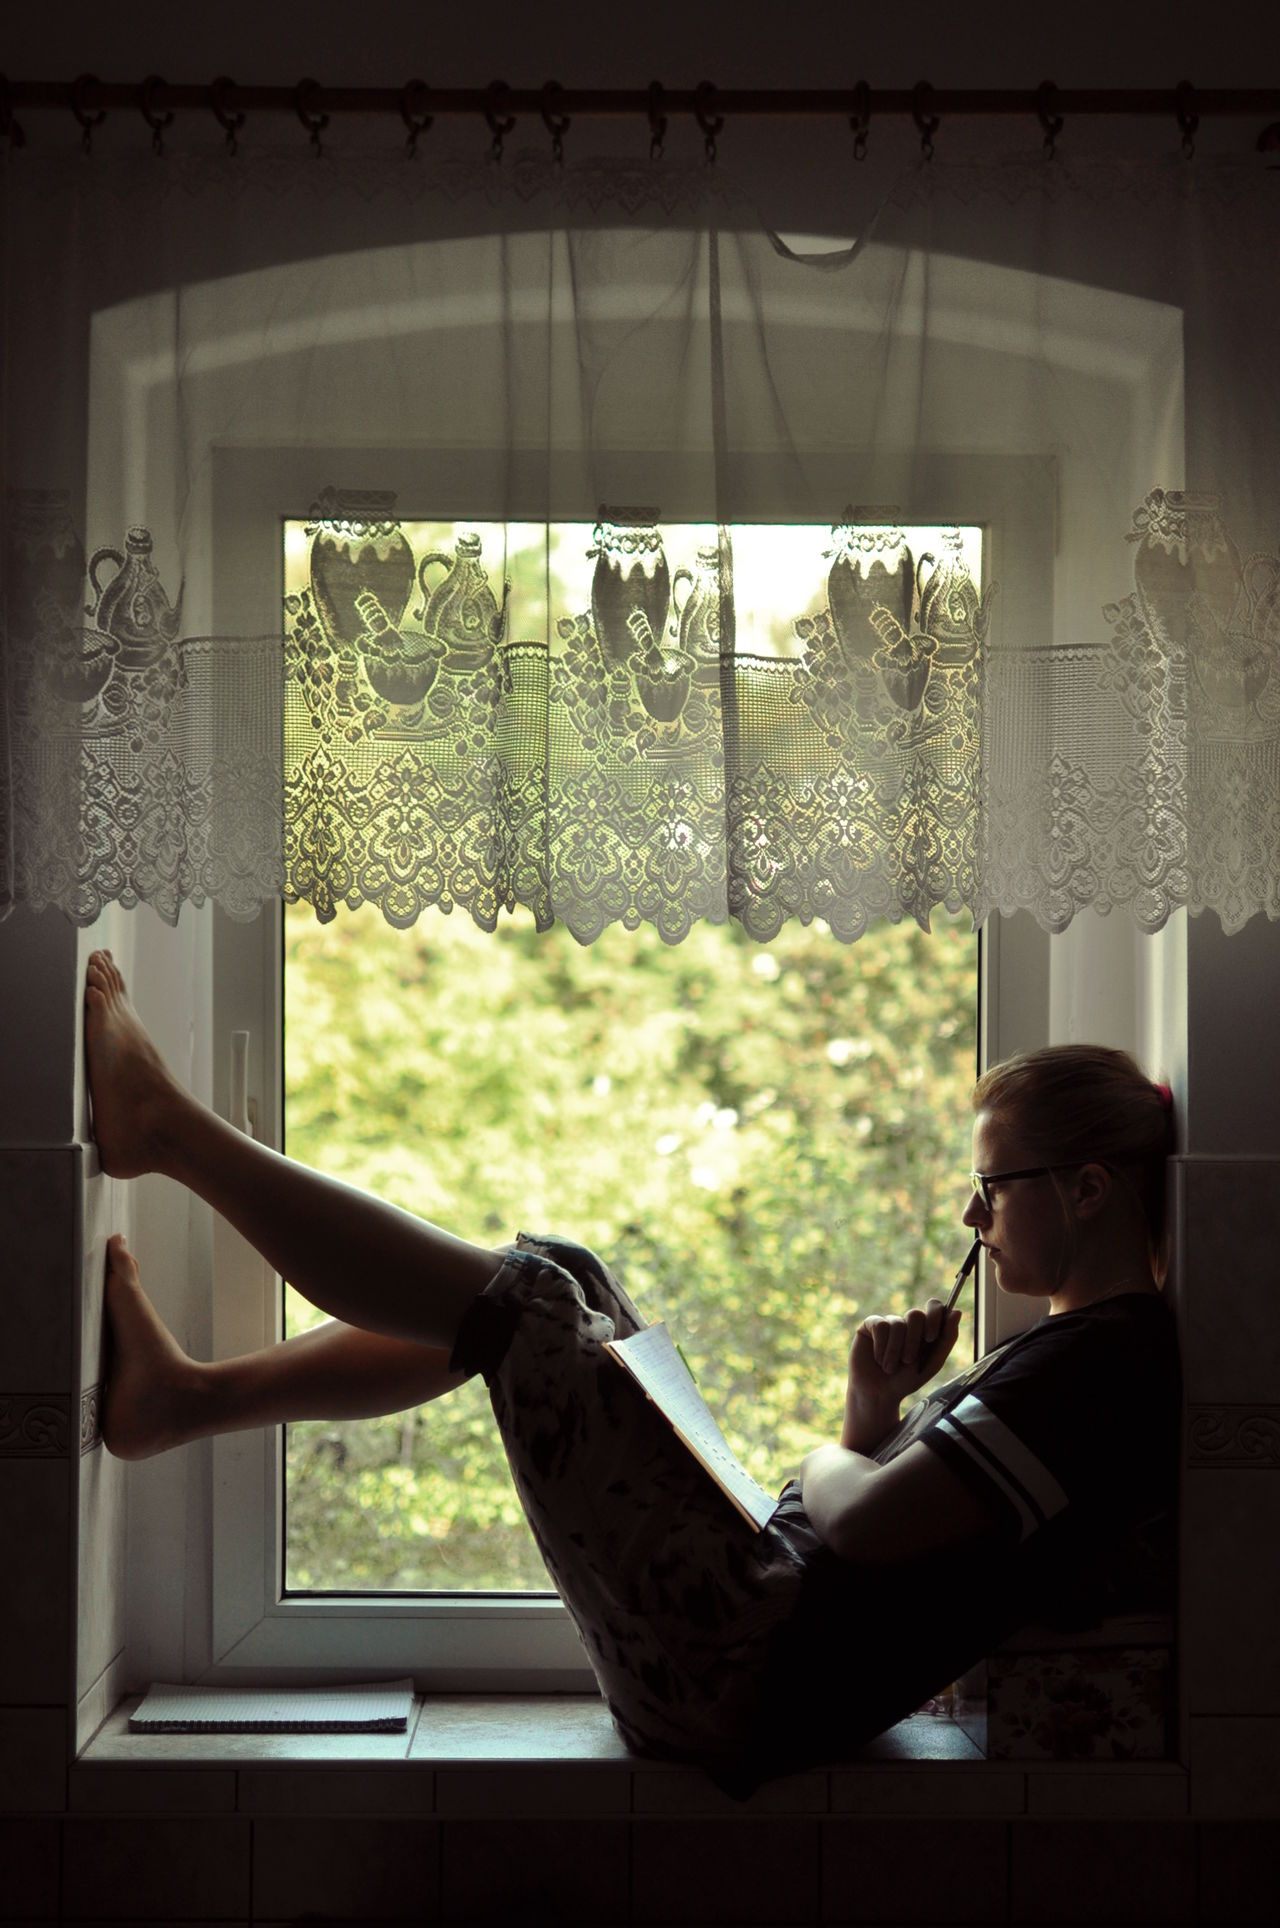 Day Domestic Life Girl Morning My Favorite Place Person Sitting Studying Thinking Window